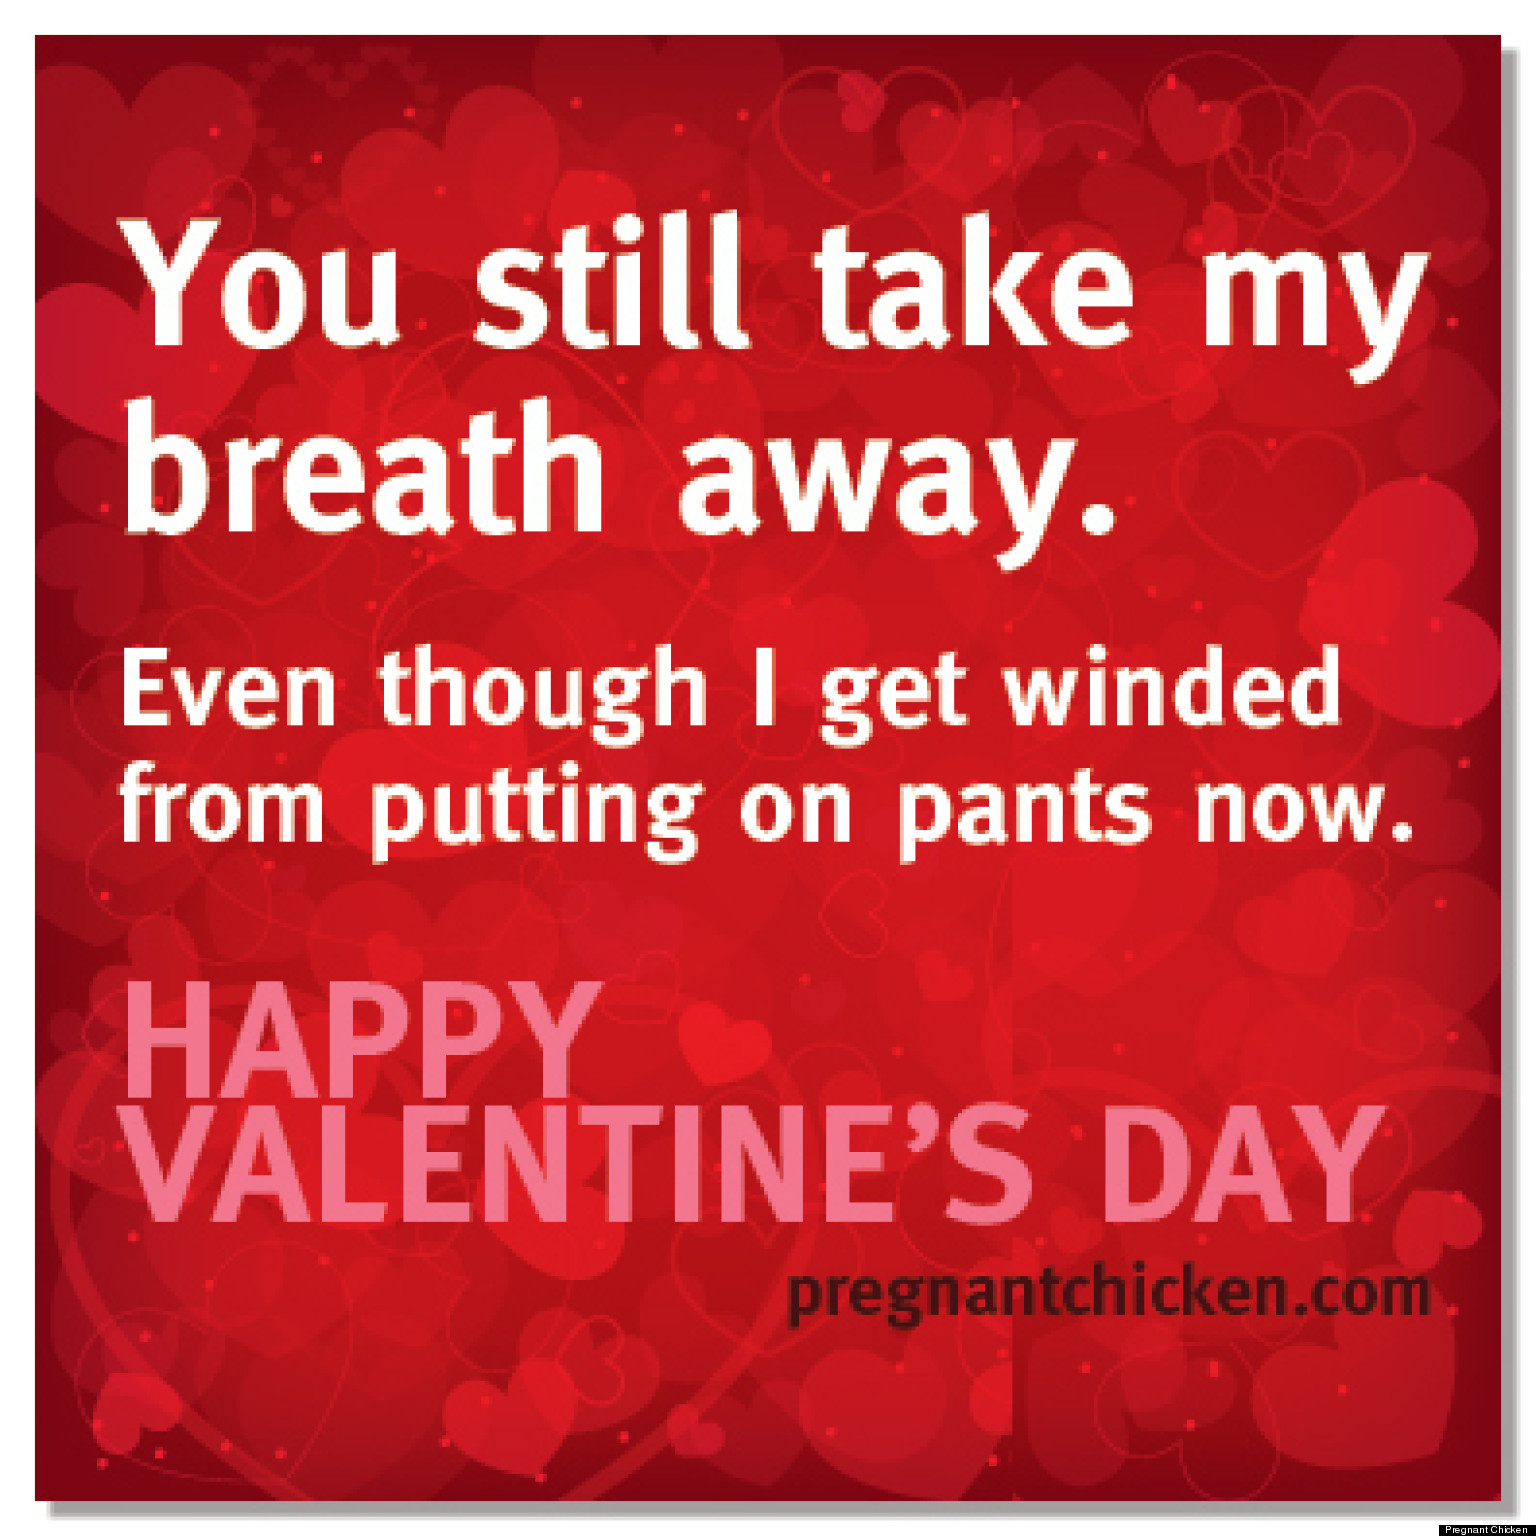 Happy Valentines Day Wife Quotes: Funny Valentines For Pregnant Women To Give Their Partners